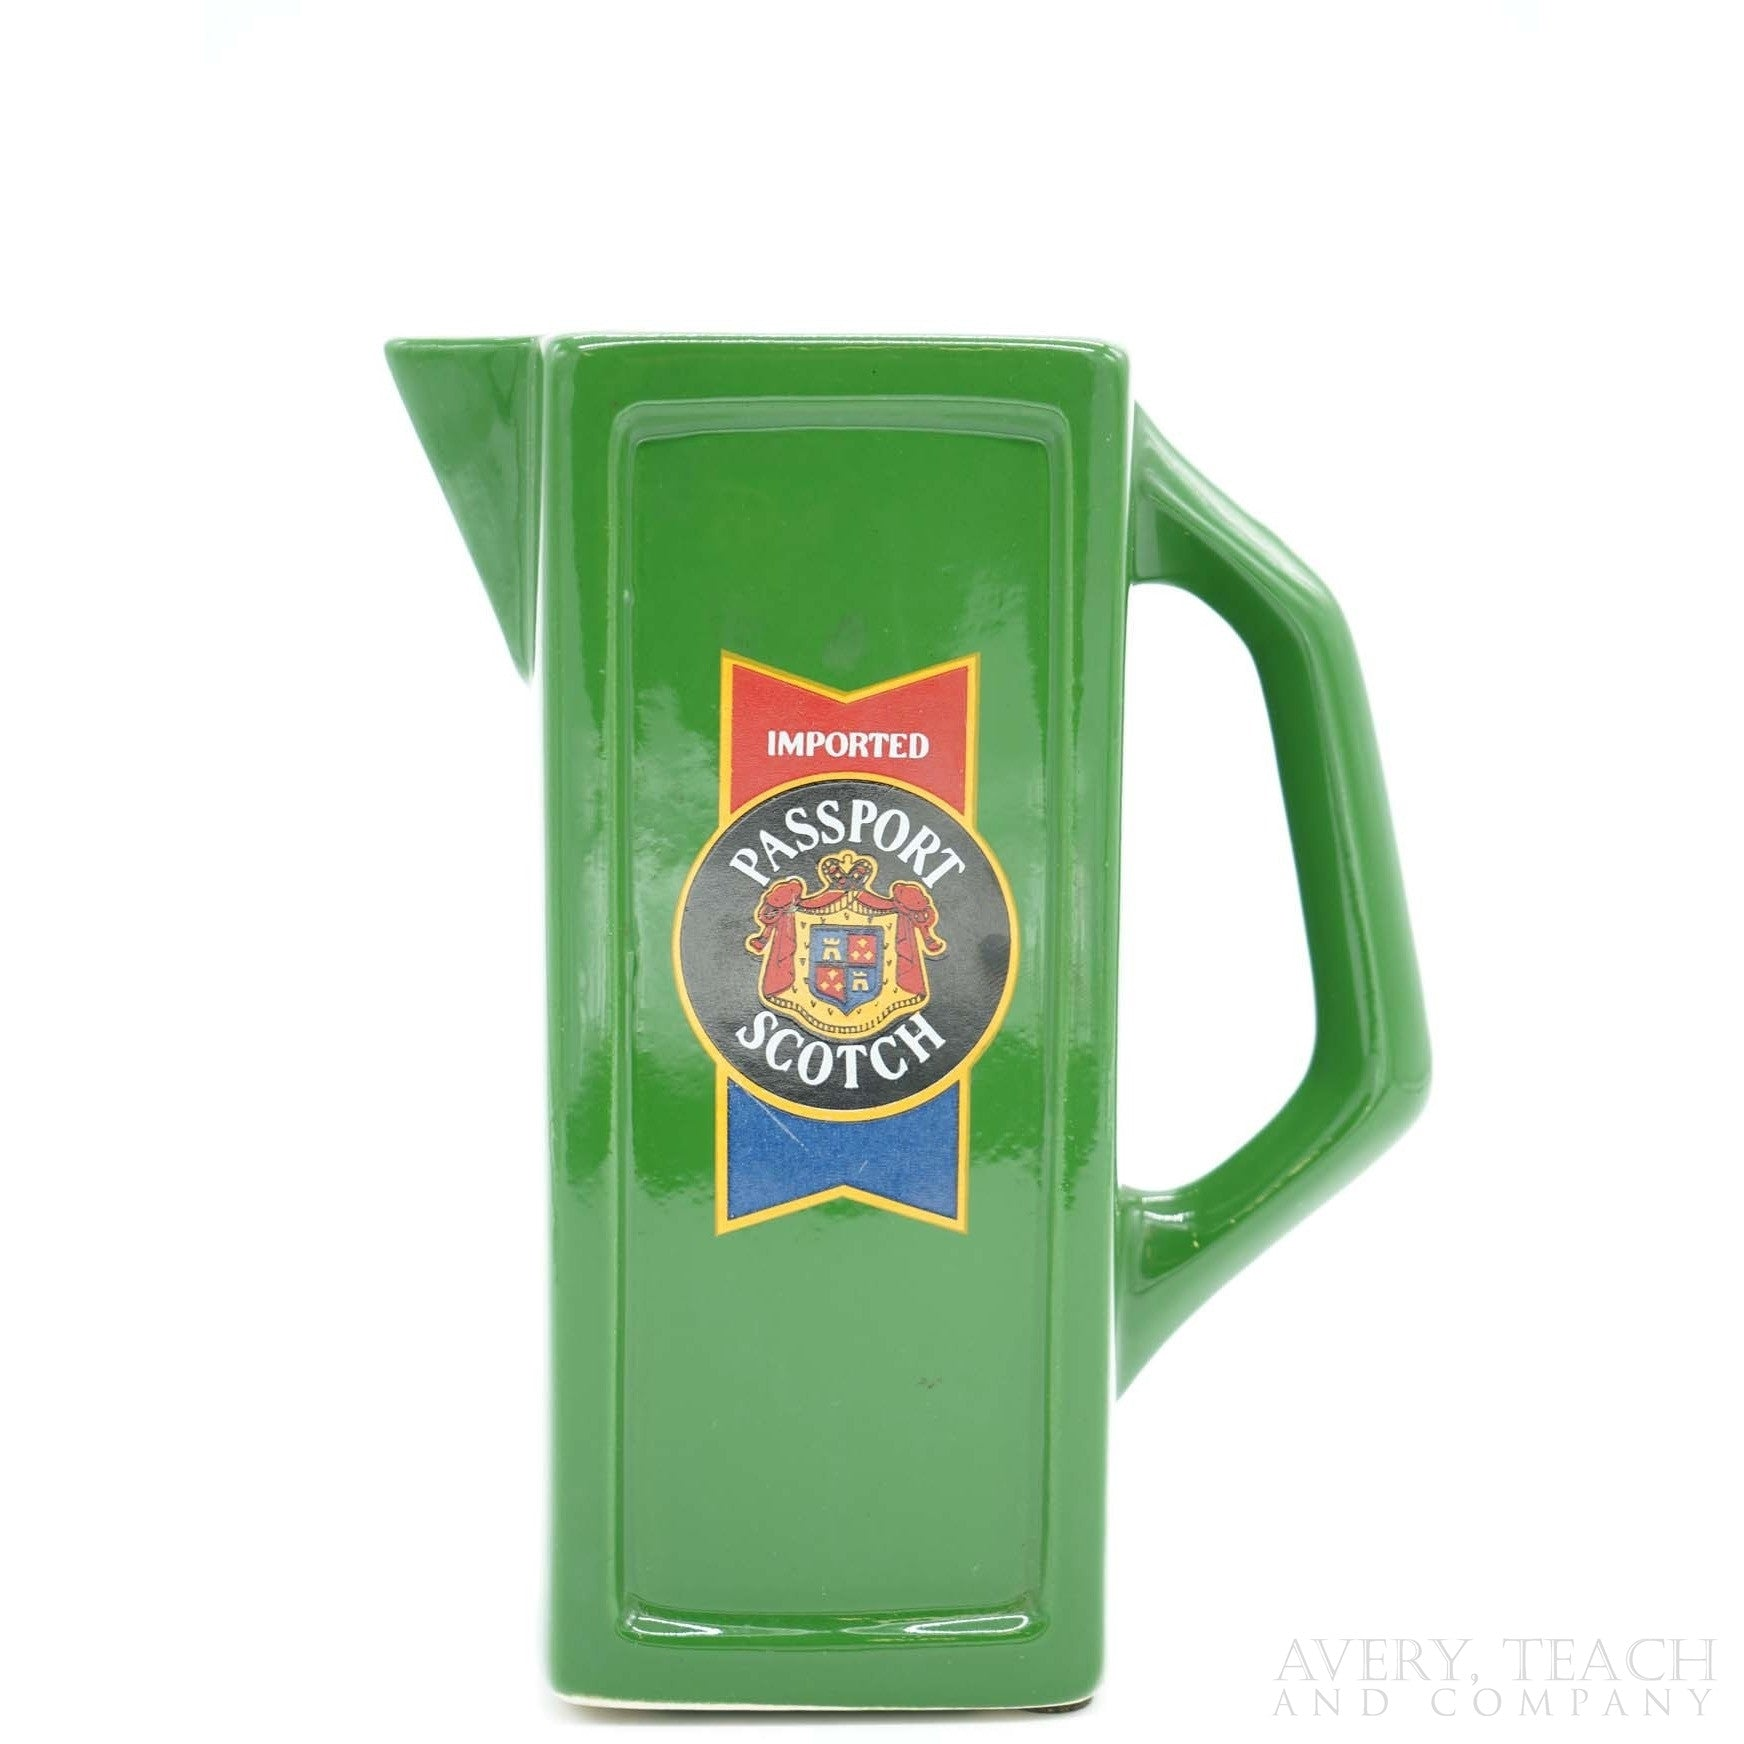 Imported Passport Scotch Green Ceramic Pitcher - Avery, Teach and Co.